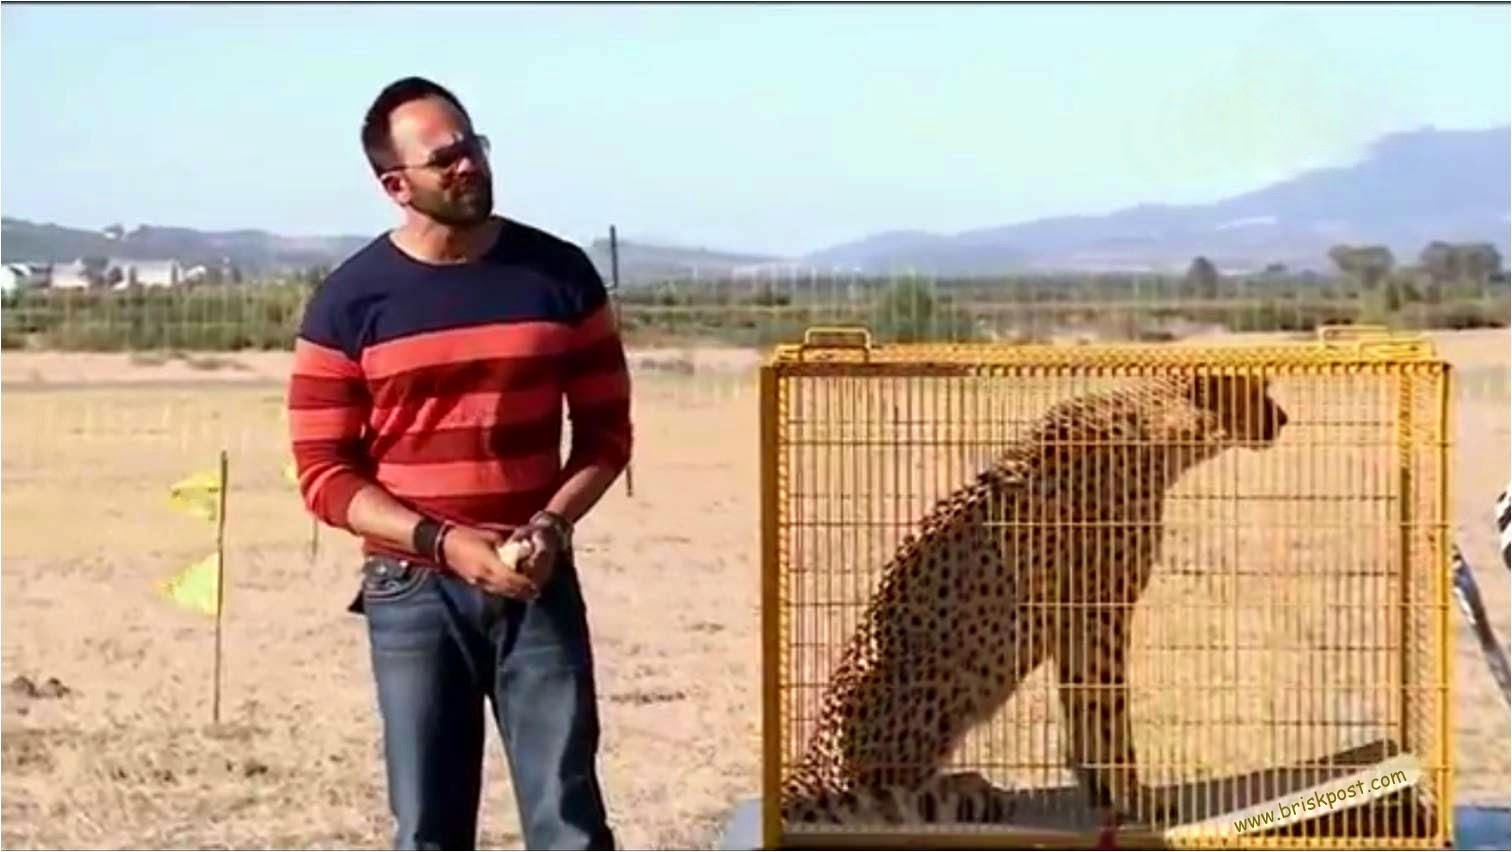 Rohit Shetty with tiget in cage at Khatron Ke Khiladi show